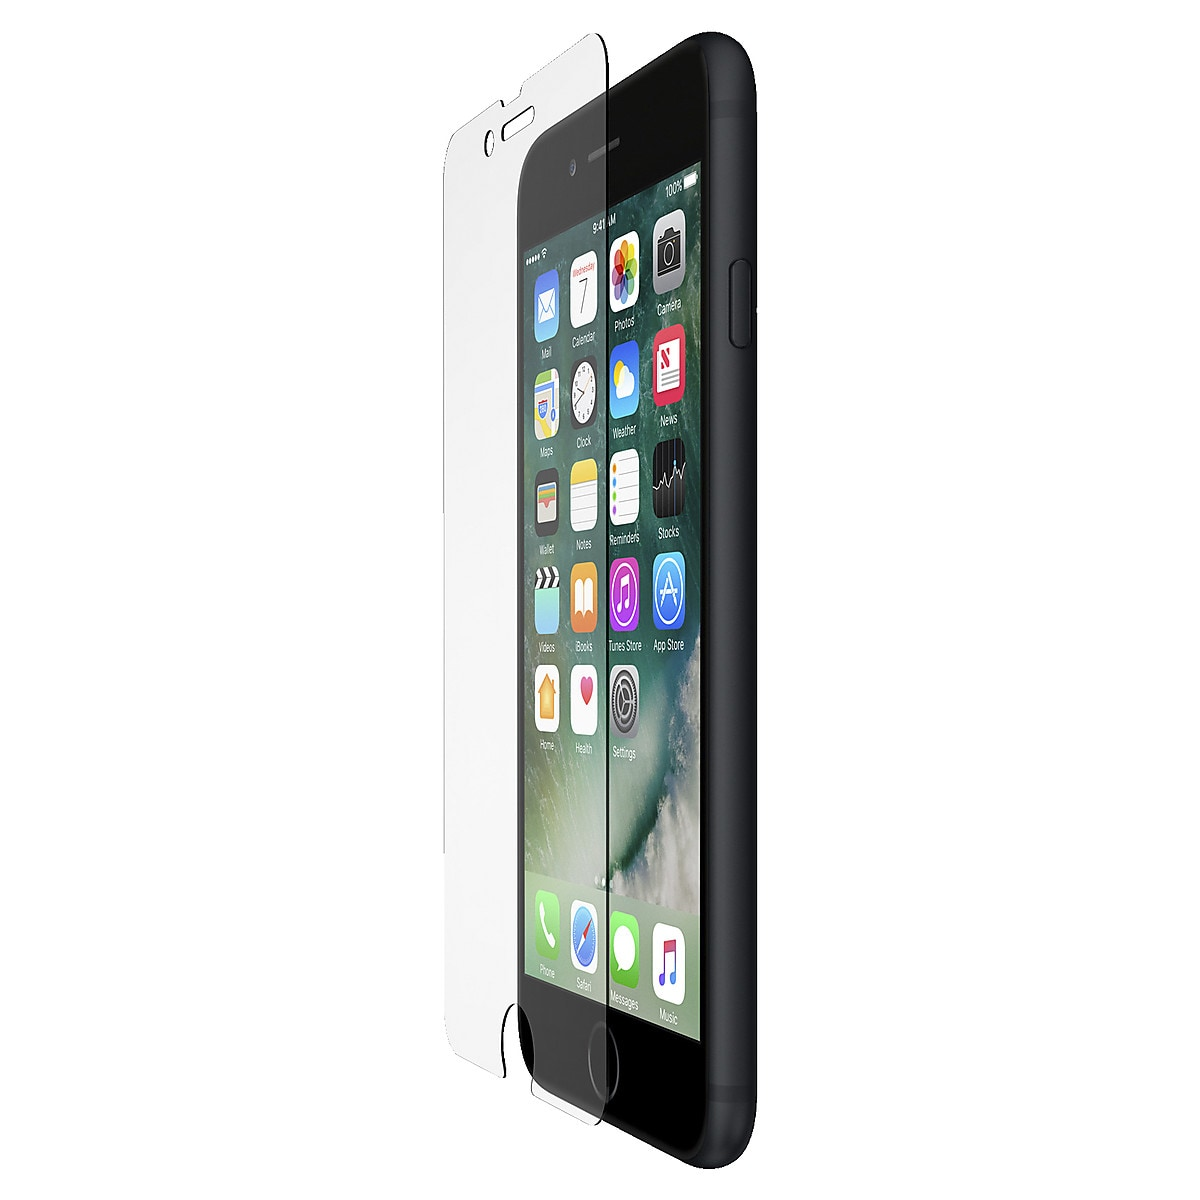 Belkin Screenforce Tempered Glass Screen Protector for iPhone 7 Plus and 8 Plus